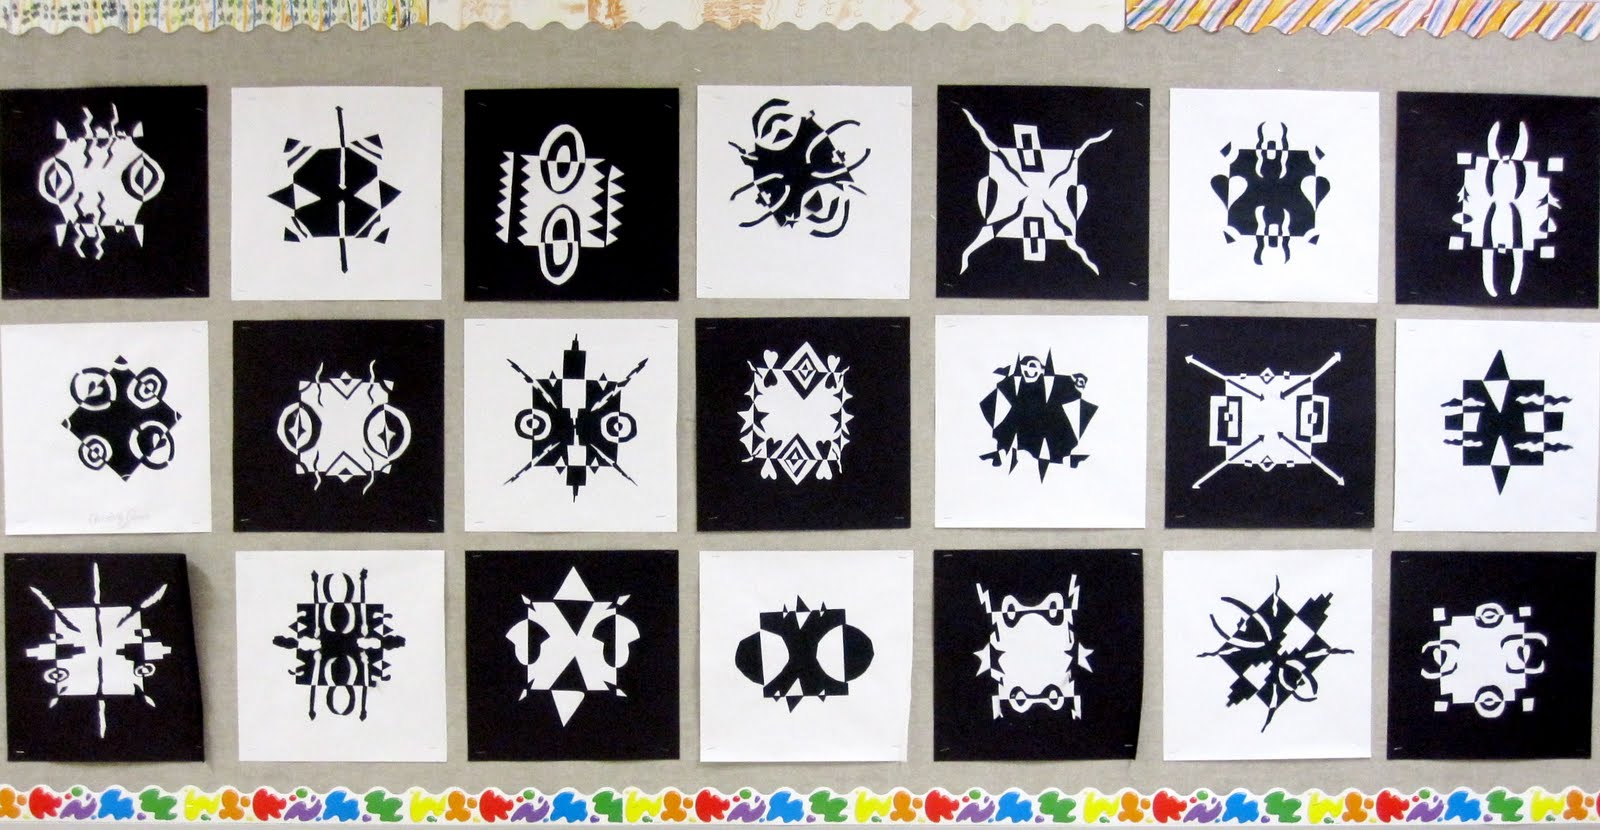 Positive Negative Art Lesson http://artexplorium.blogspot.com/2010/12/positive-and-negative-space-designs.html